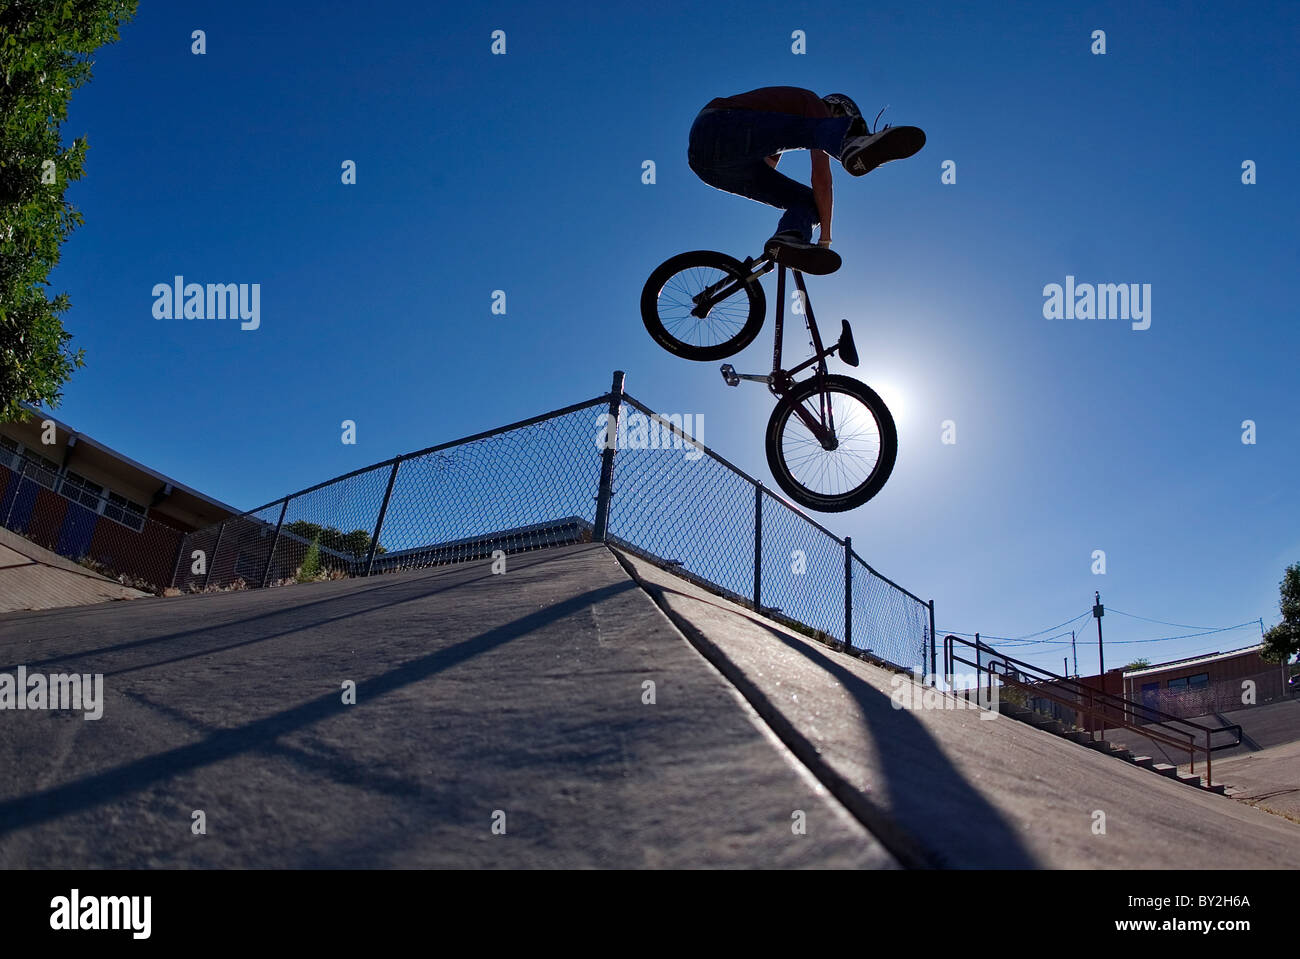 A mountain bike rider does a tailwhip on a concrete bank in Albuquerque, NM. - Stock Image